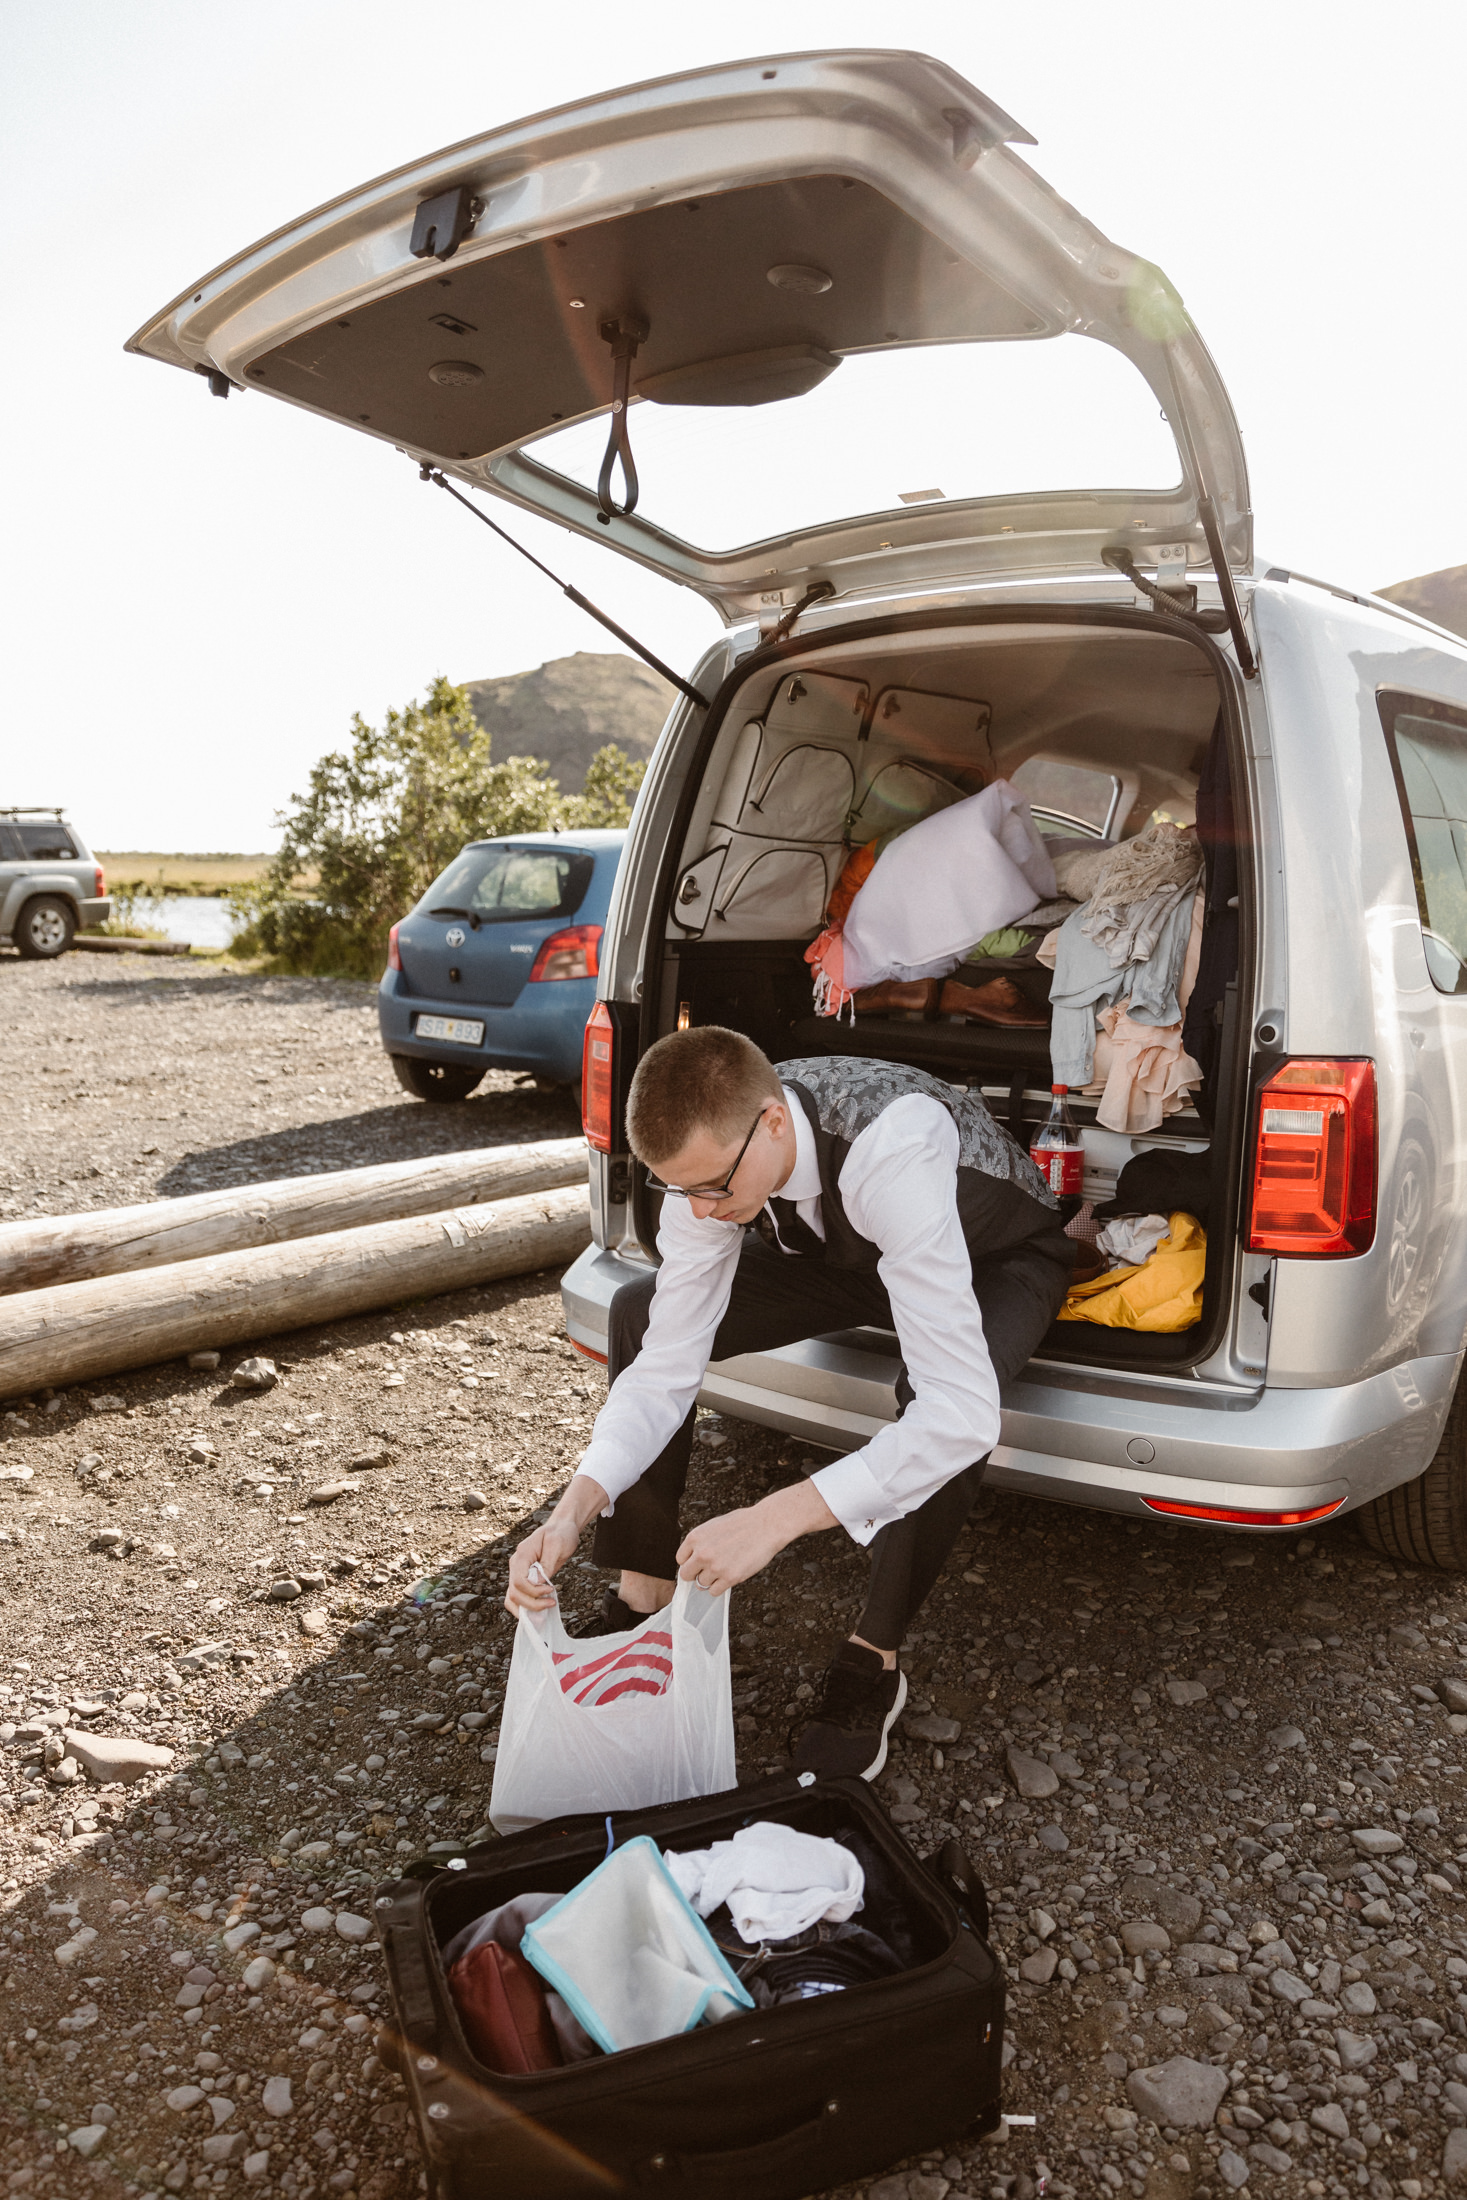 Groom getting ready for his wedding in a camper van in Iceland.